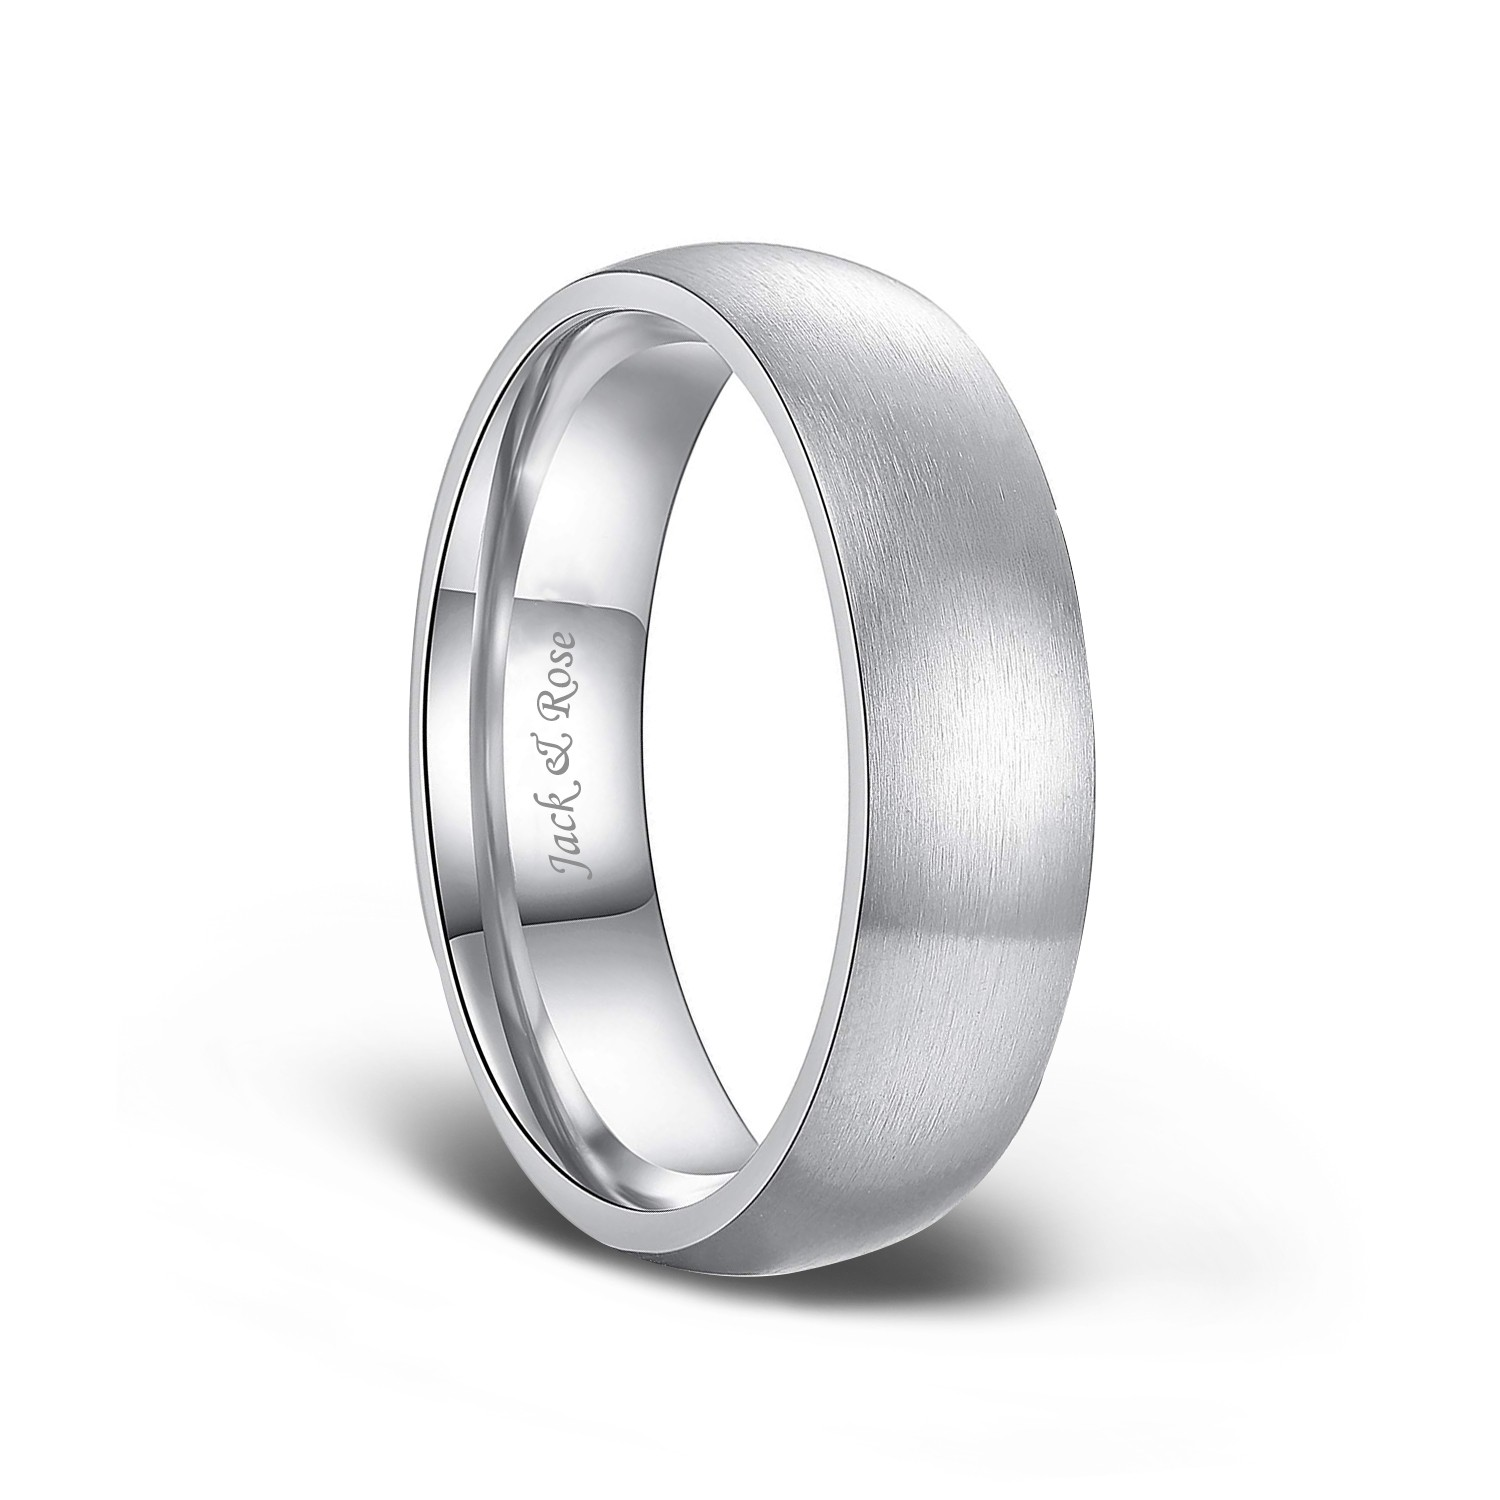 6mm White Titanium Classic Domed Brushed Finish Wedding Band Ring For Men Or Ladies